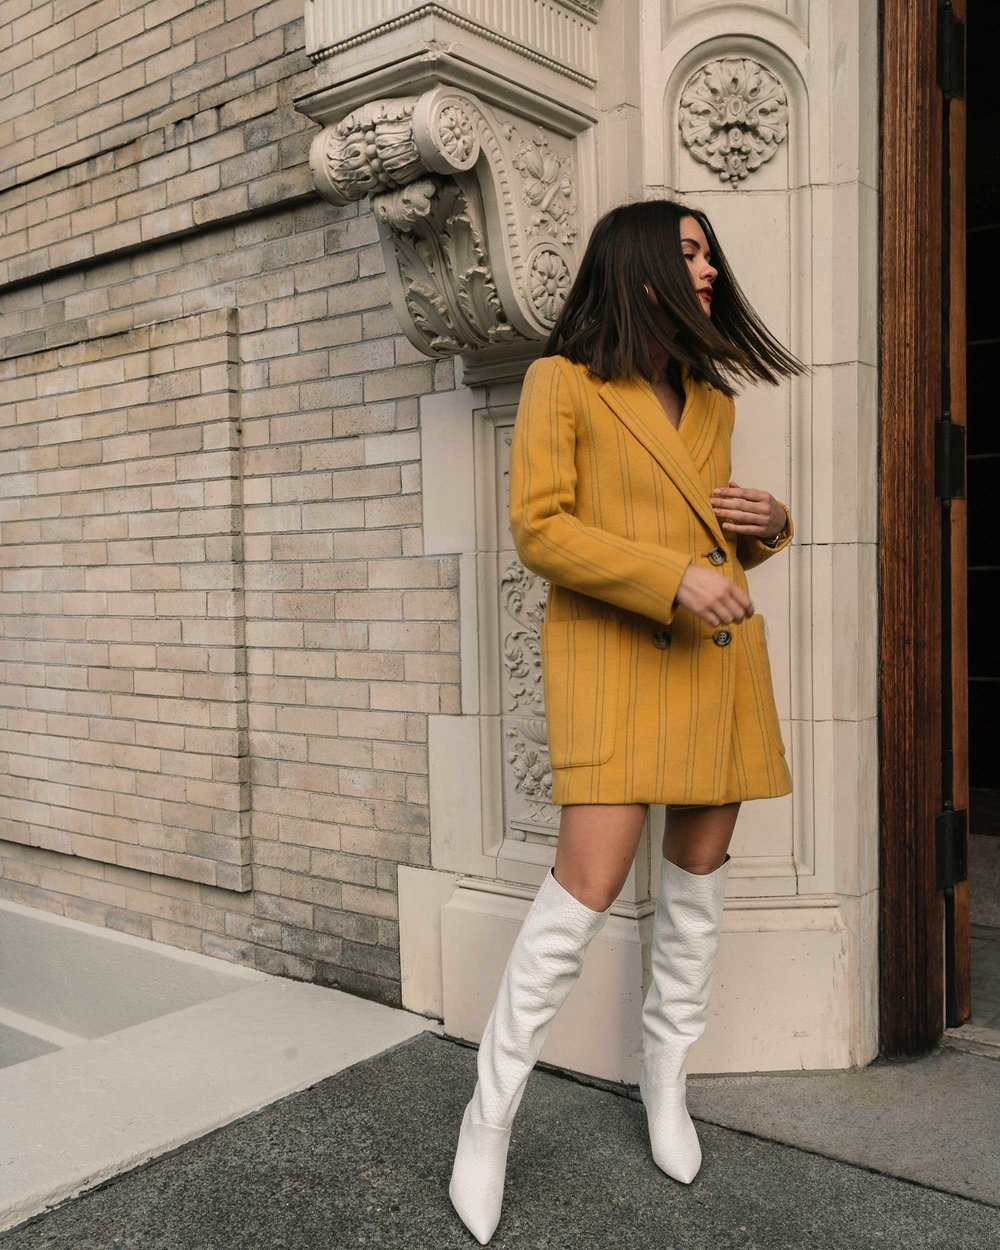 Sarah Butler of Sarah Styles Seattle wears Joie Revet White Snake Print Tall Boots and Madewell Double-Breasted Yellow Coat | @sarahchristine5.jpg